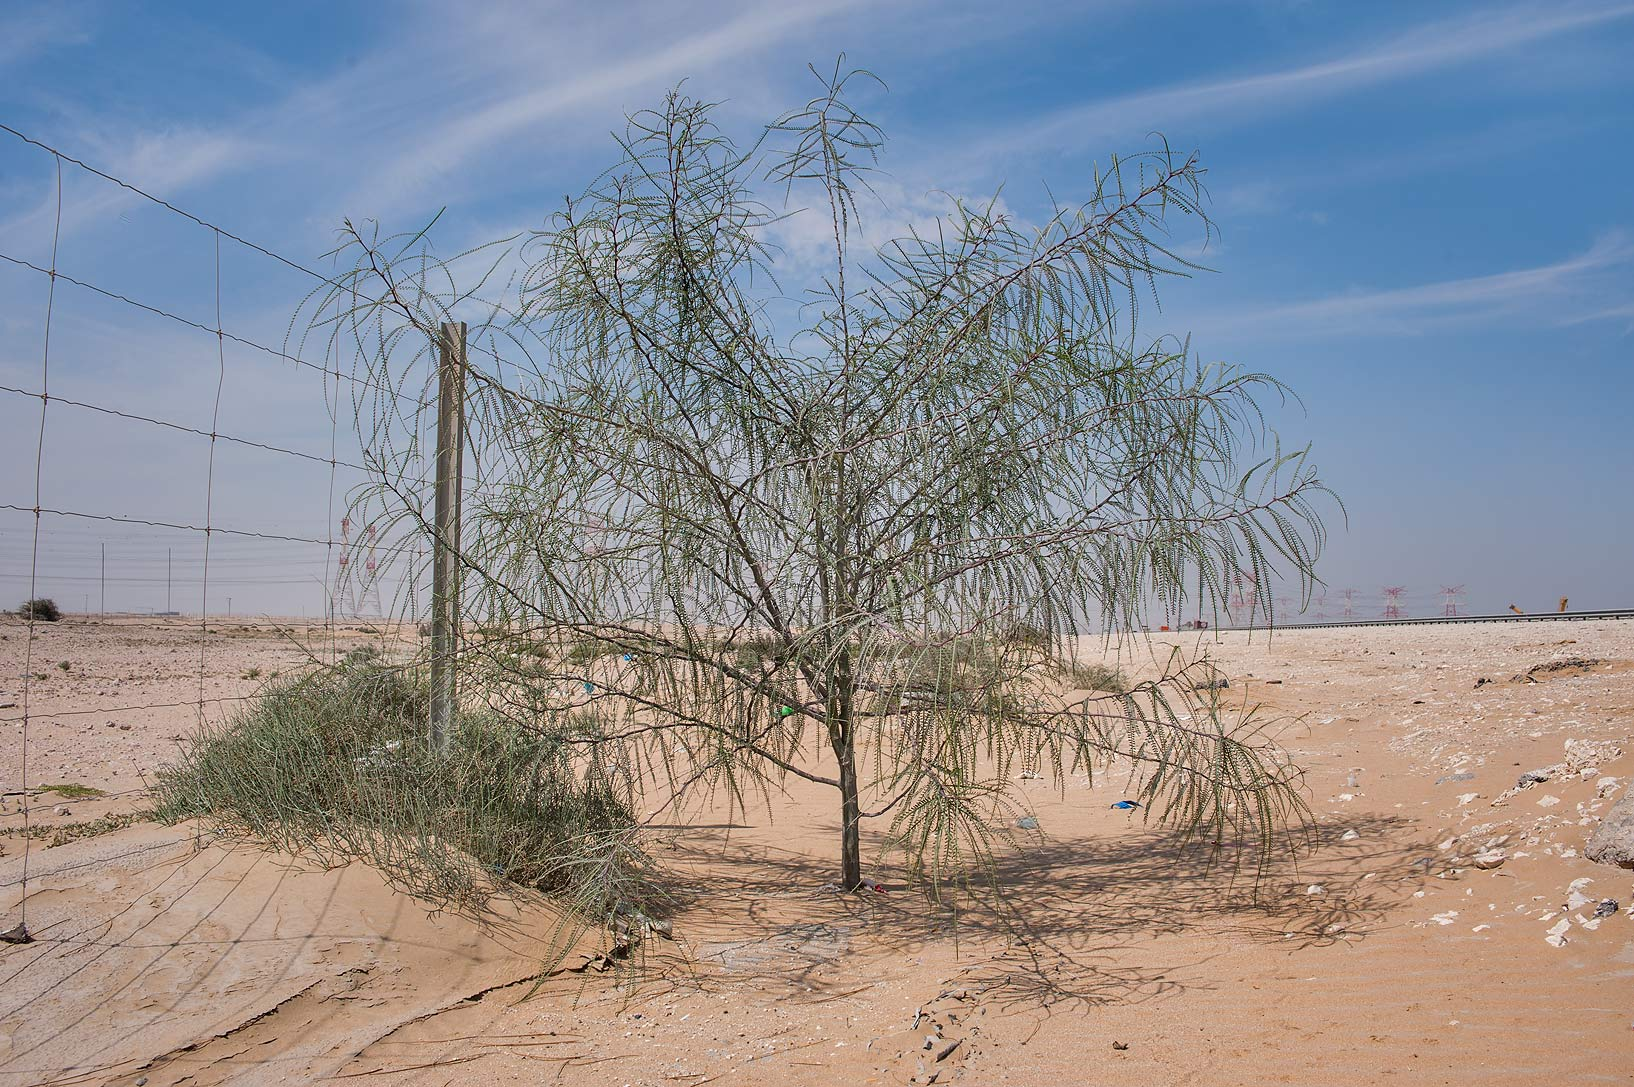 Horsebean (paloverde, Ratama, Parkinsonia...roadside of a road to Mesaieed. Qatar